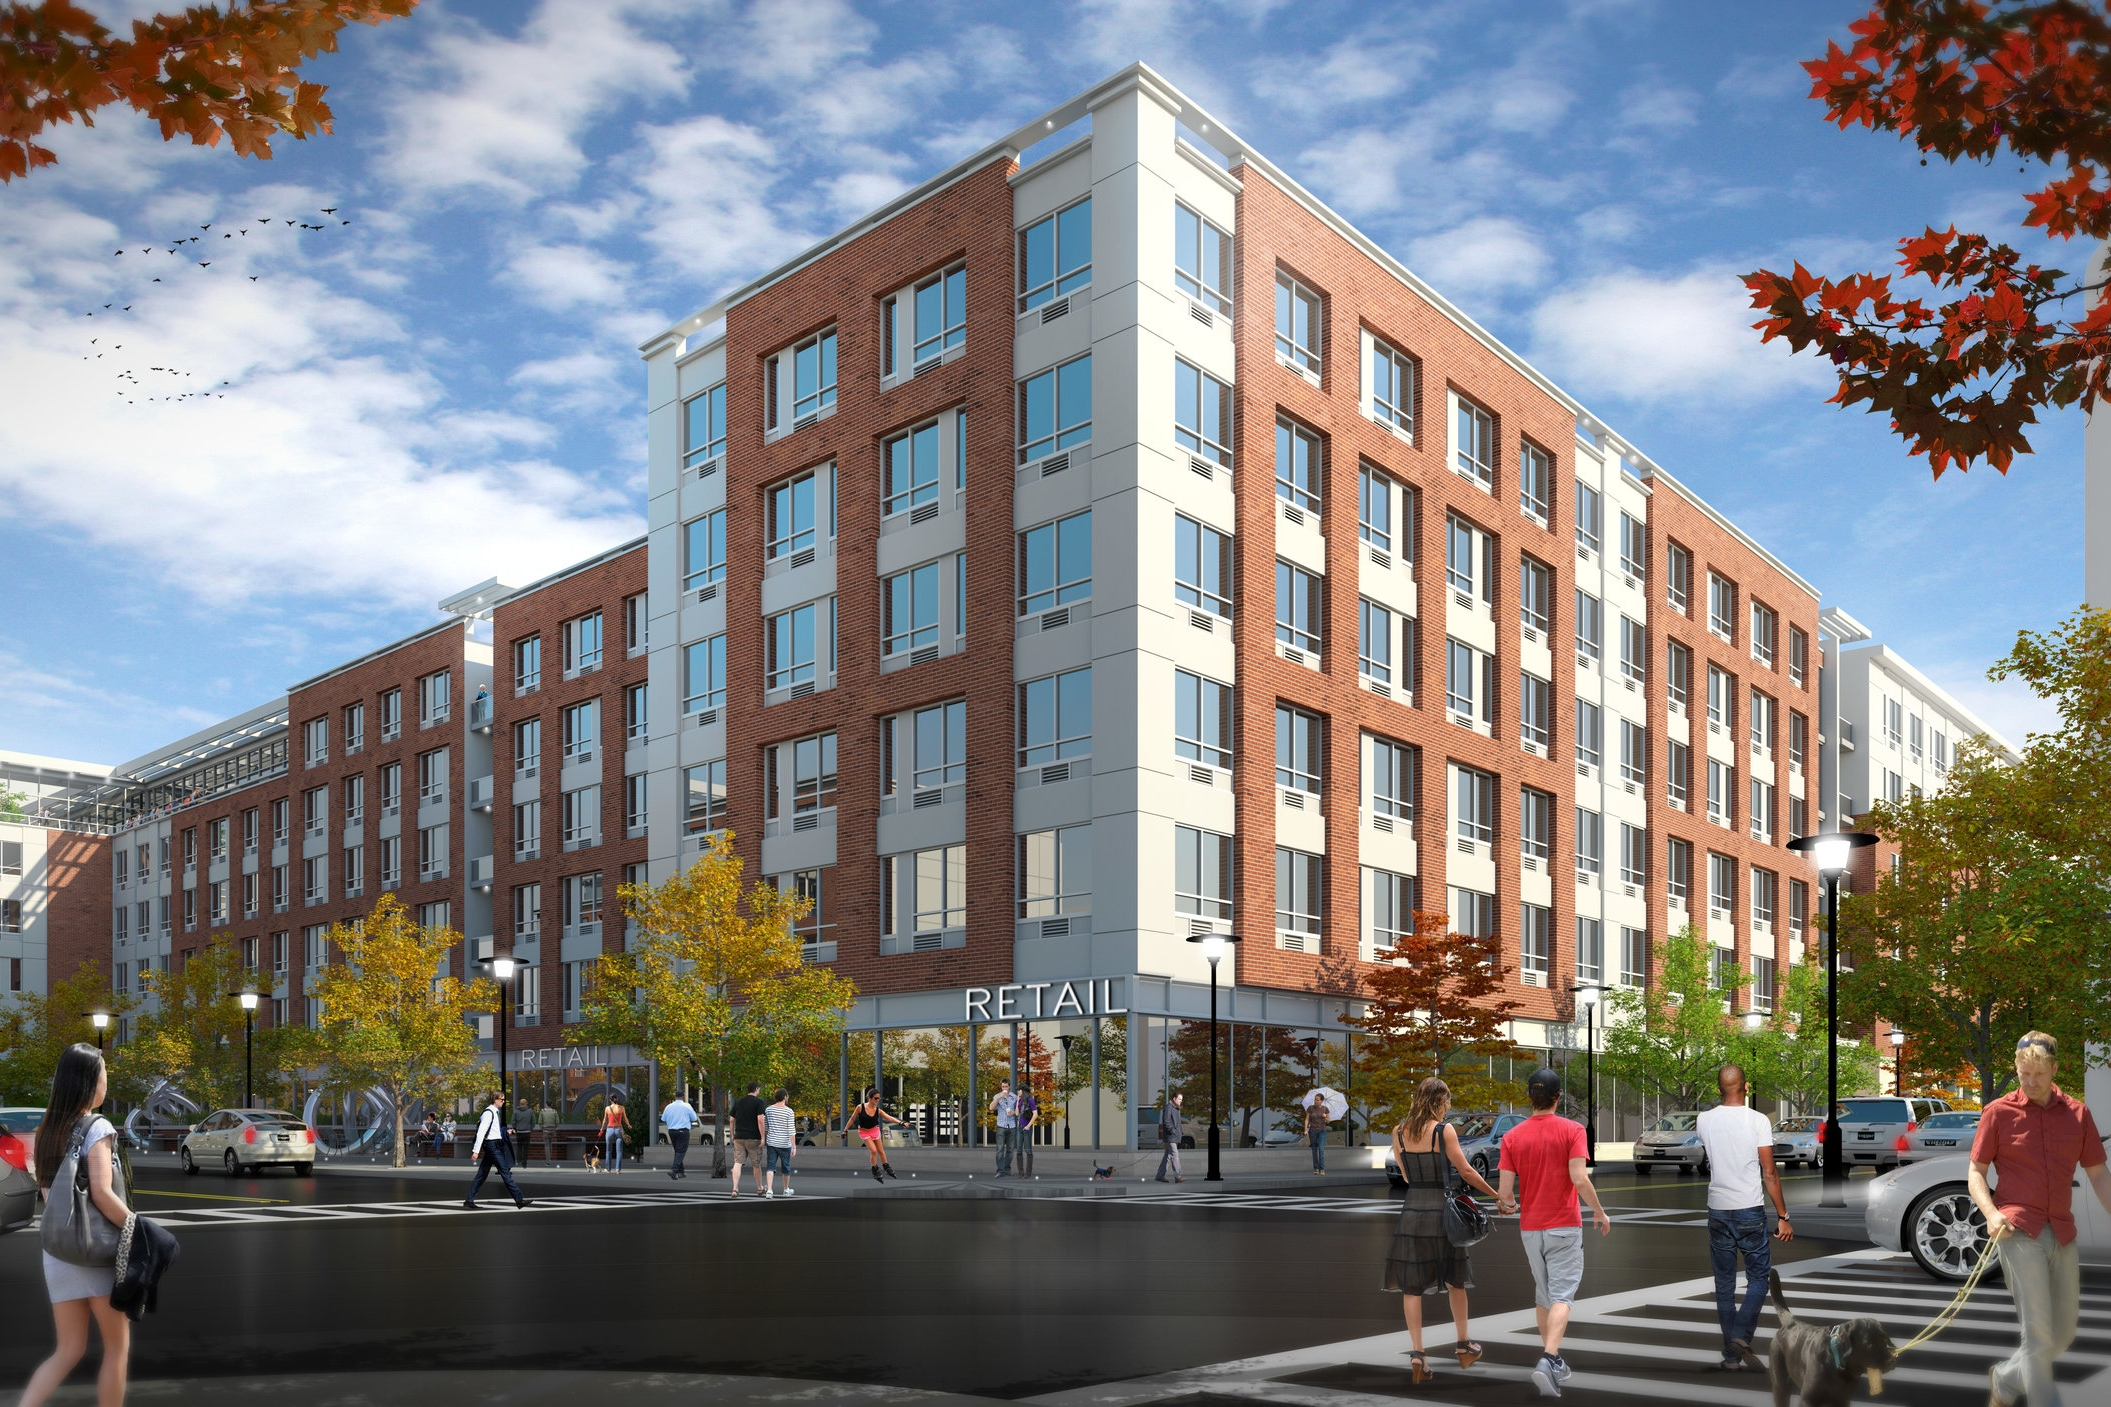 Mulberry Street Development - Two-phased, 350,000 SF mixed-use development project in Newark, New Jersey. This project includes 311 residential units, a multi-story parking deck, ground floor retail & residential amenities.